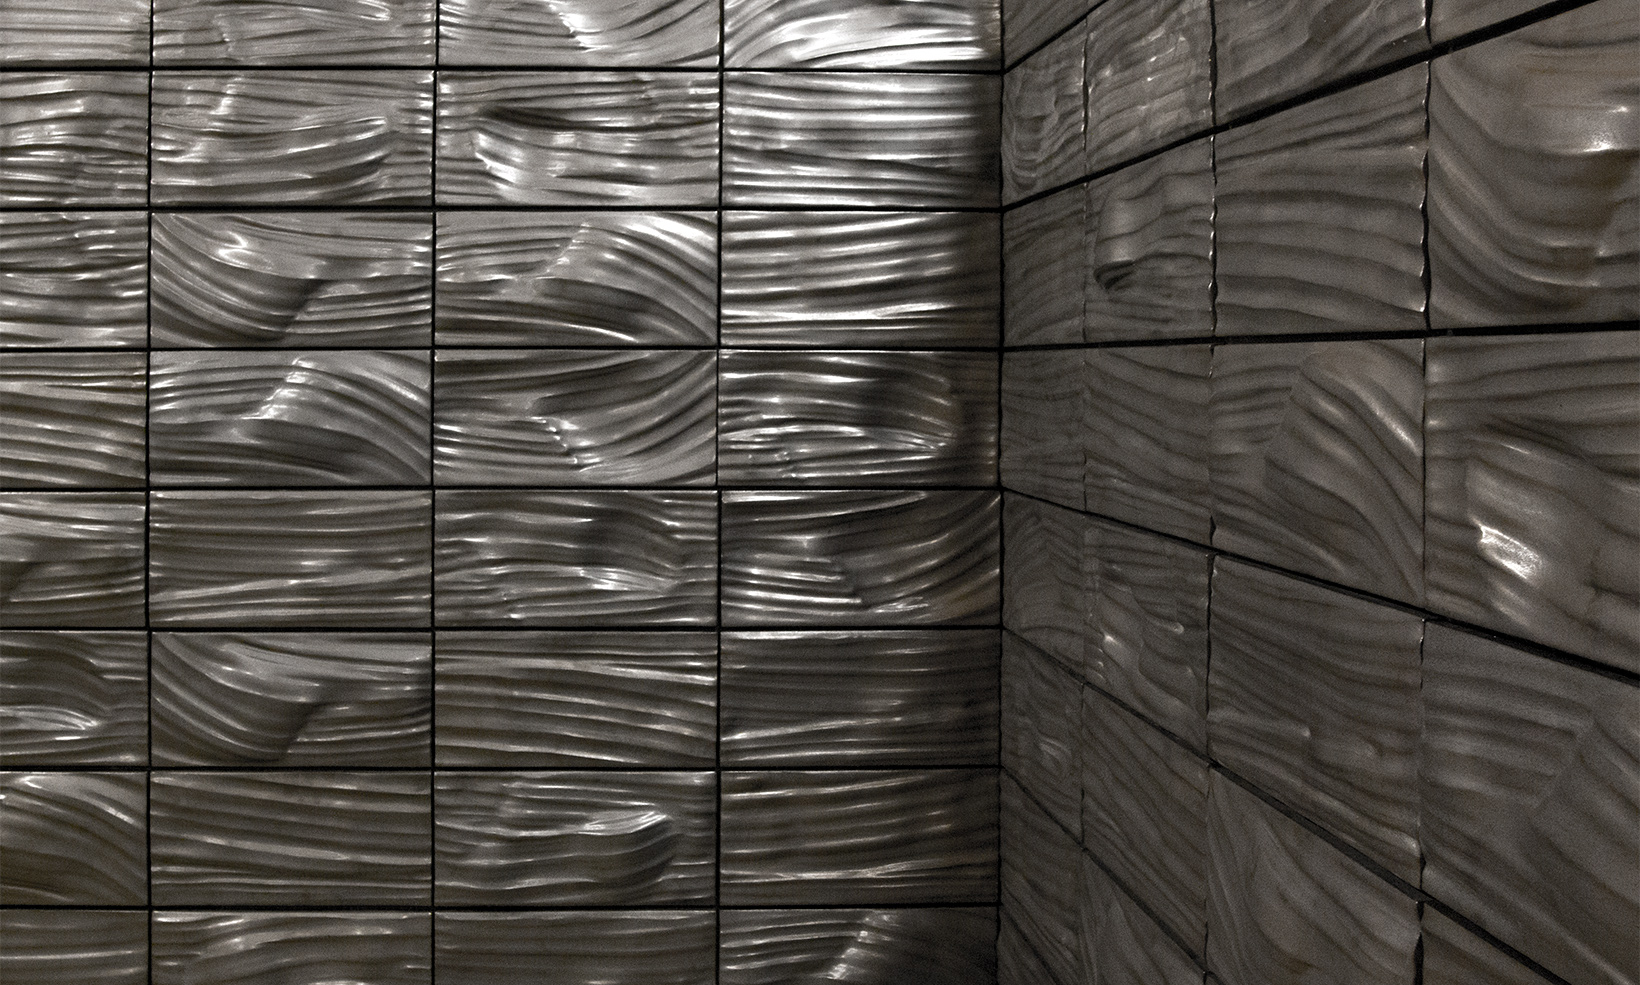 Ceramic artist Anne Currier's exhibit 'Display' consists of a series of undulating terra cotta tiles glazed in both black and white